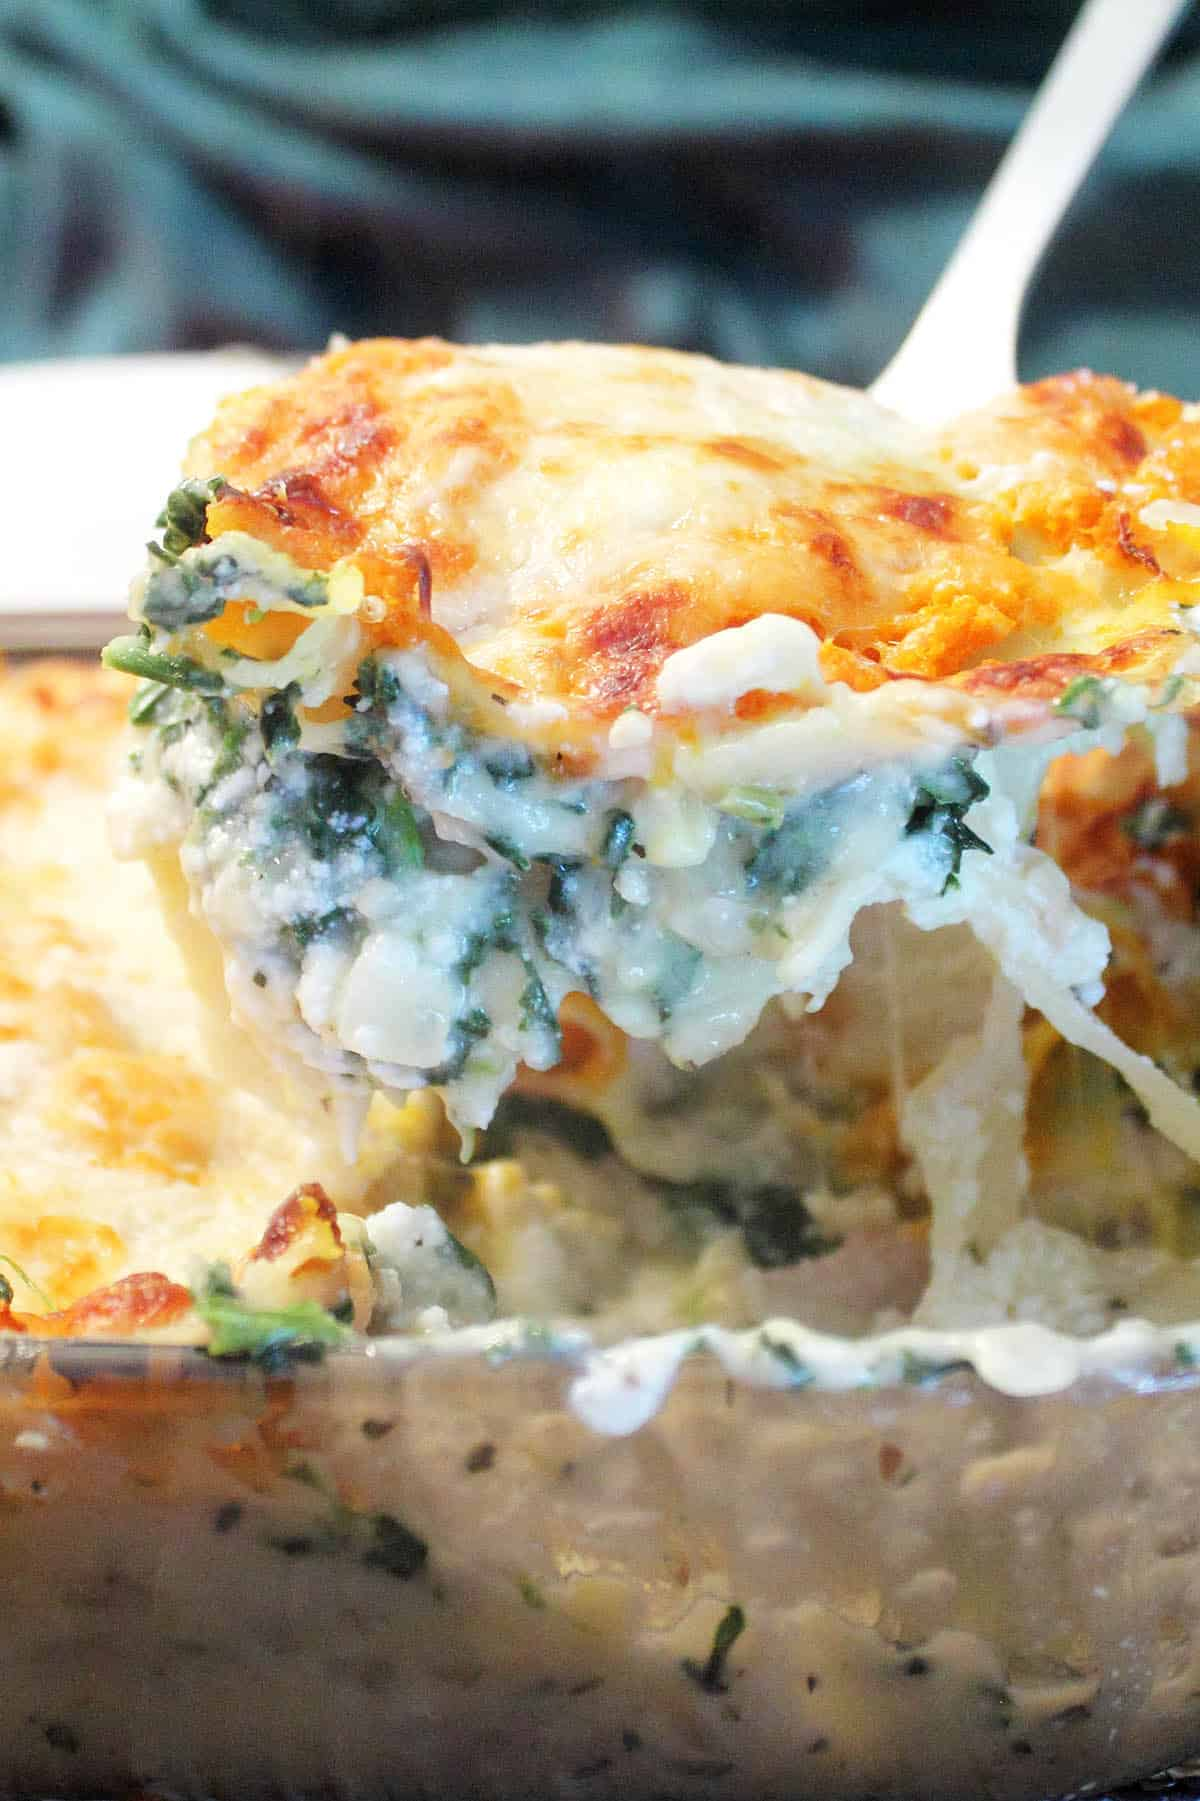 Lifting out a serving slice of chicken lasagna over casserole.